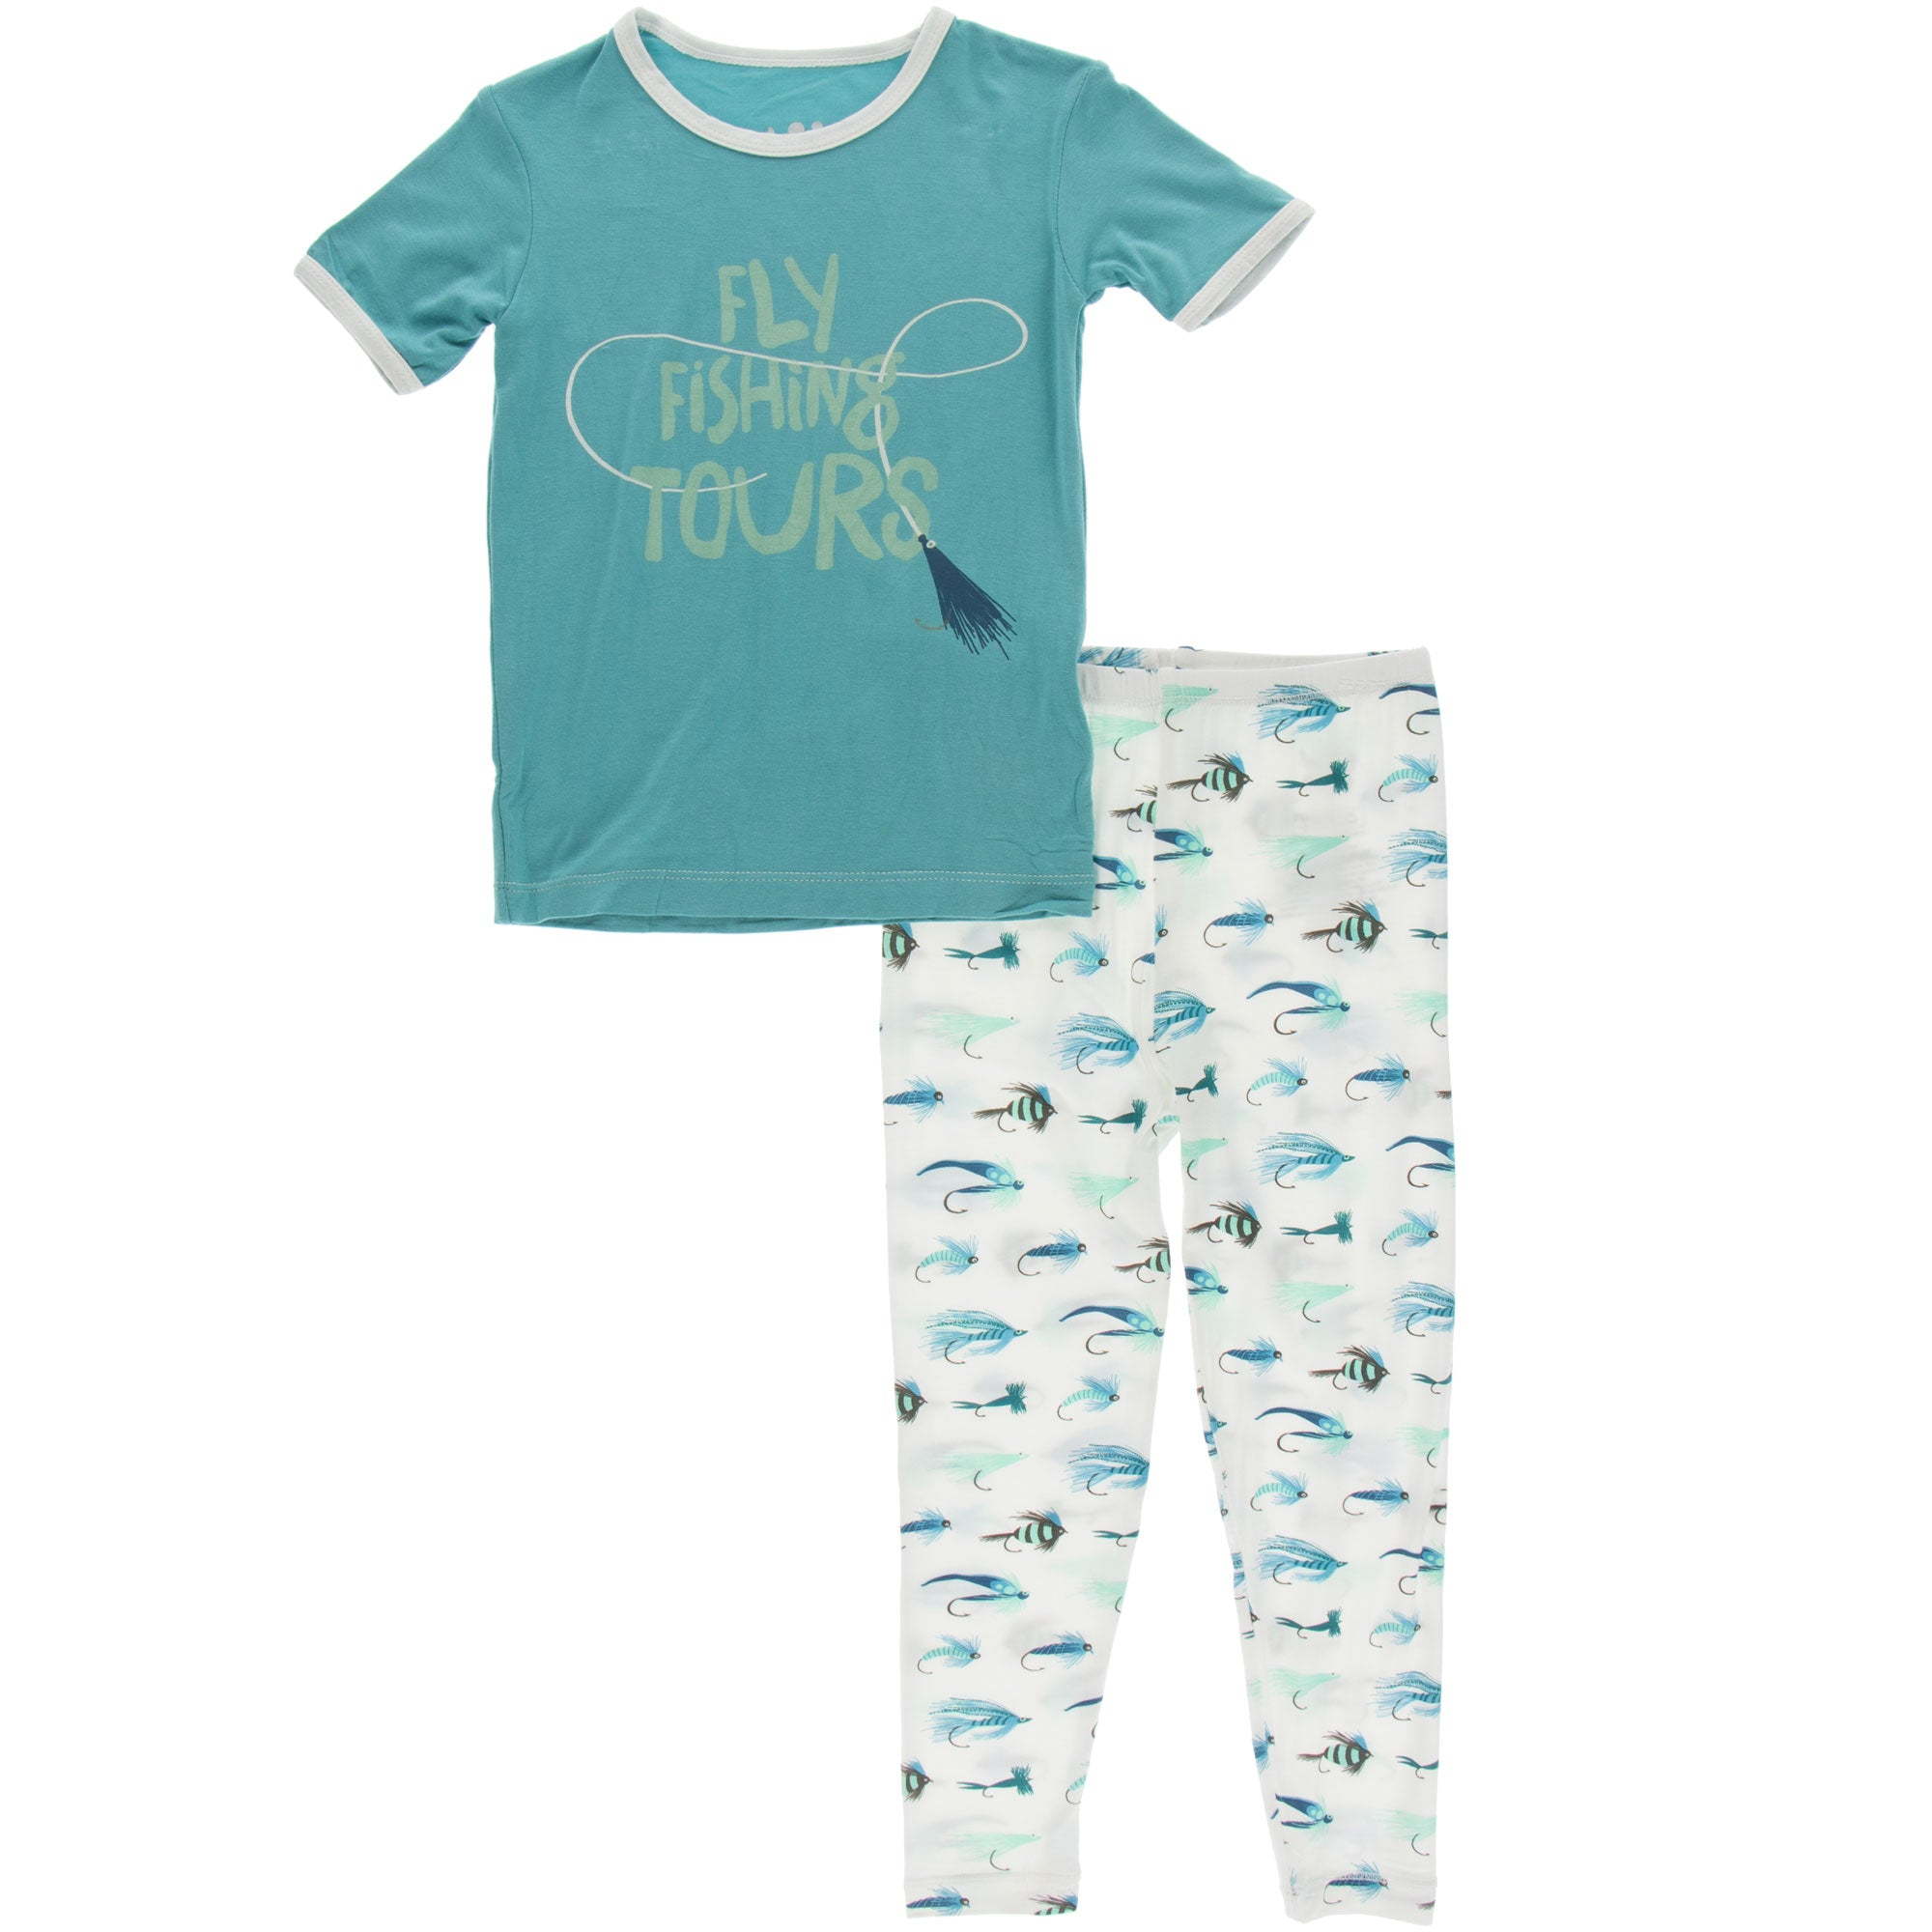 KicKee Pants Short Sleeve Pajama Set - Natural Fishing Flies